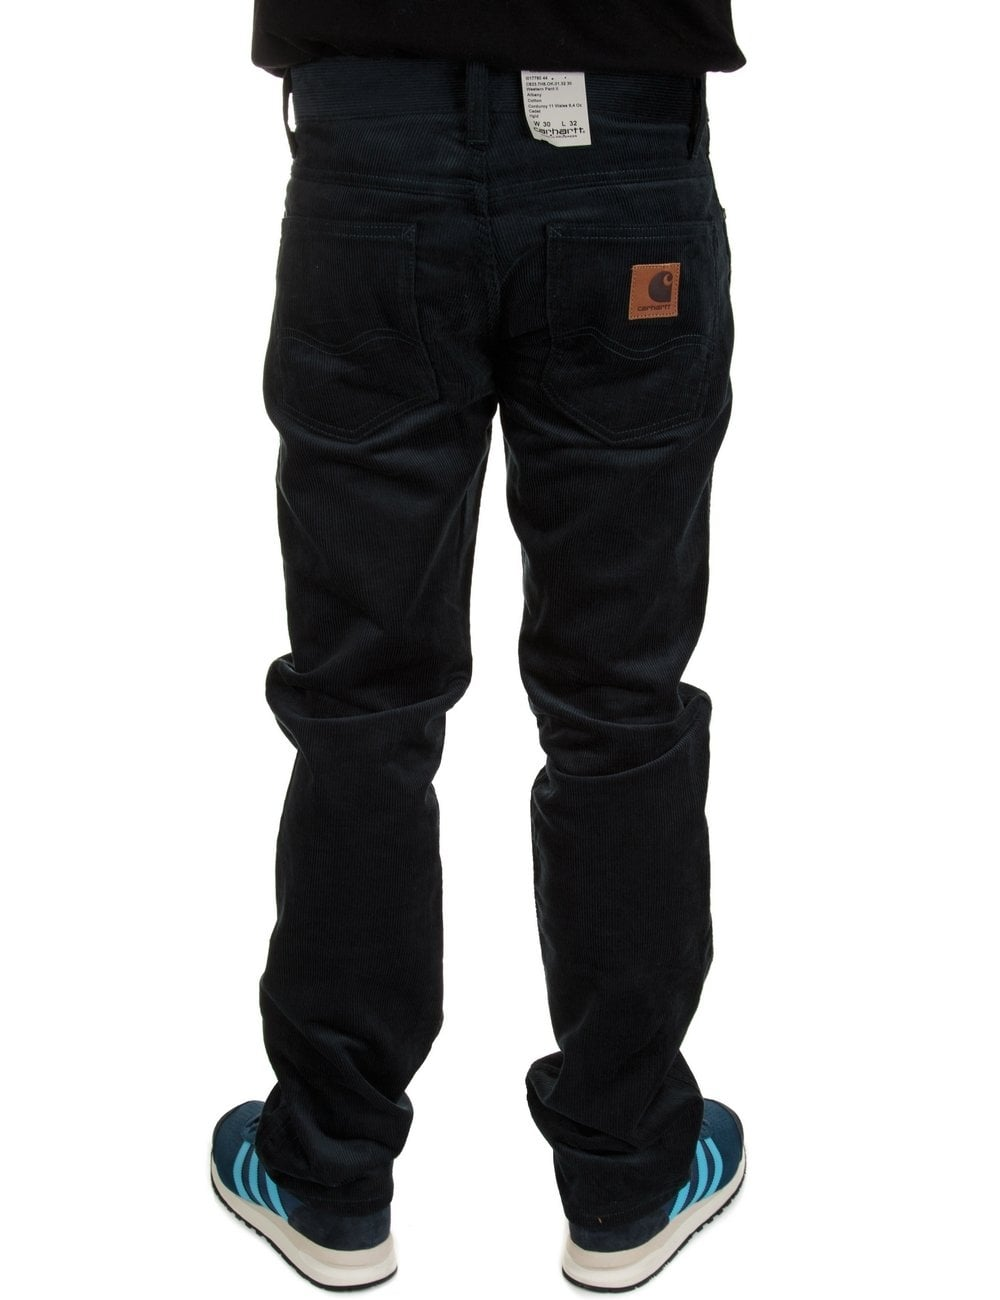 Carhartt Wip Western Pant Ii Cadet Albany Cord Clothing From Fat Buddha Store Uk